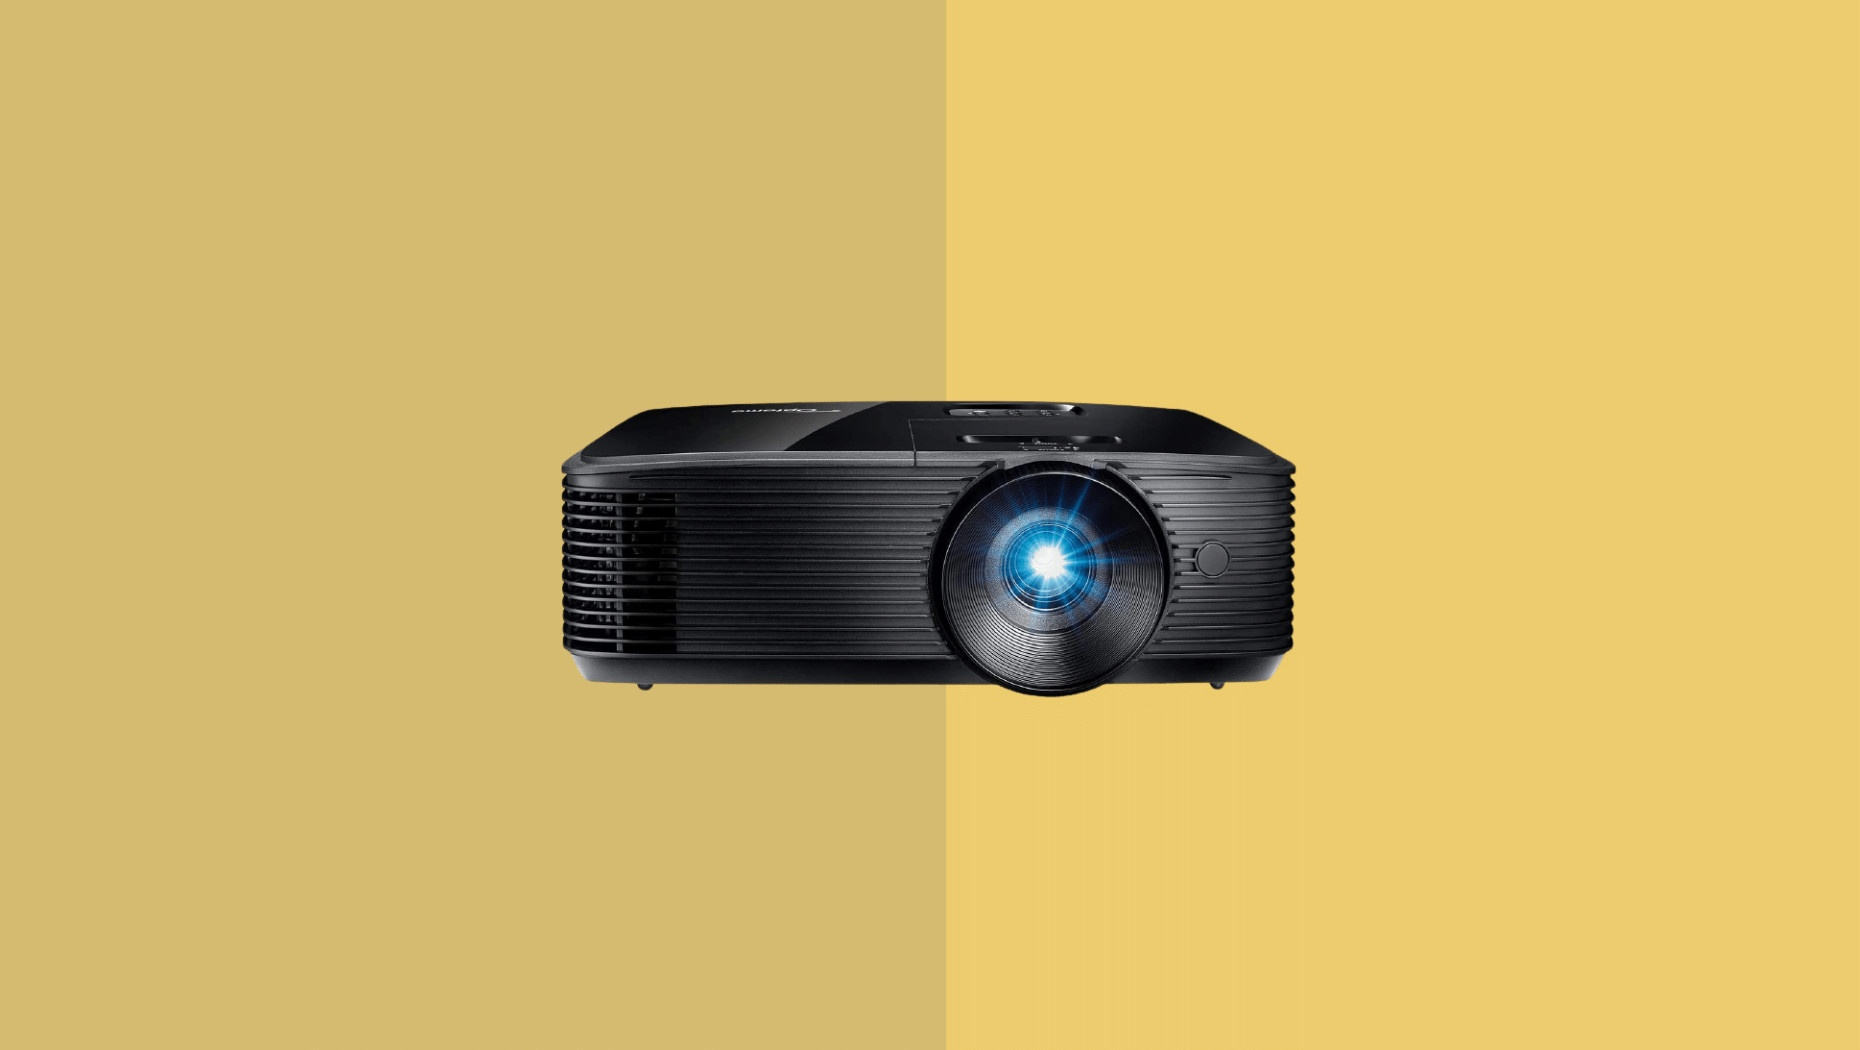 Best projector for watching Netflix